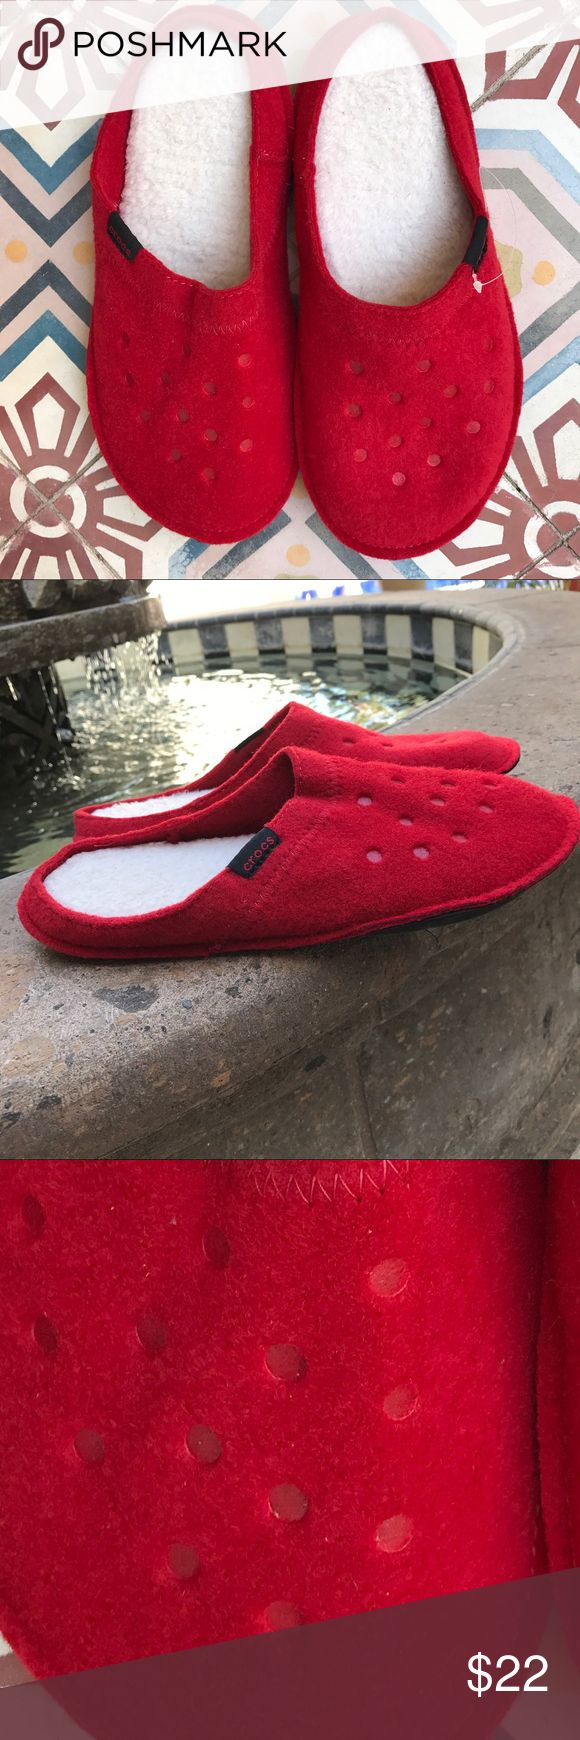 CROCS SLIPPERS SLIDES SLIP ONS SHOES SIZE 8 New.  Adorable and cozy.  Crocs slippers. Felt material with cozy footbed.  Never worn.  🤗🤗🤗BUNDLE AND SAVE. 🤗🤗🤗 CROCS Shoes Slippers